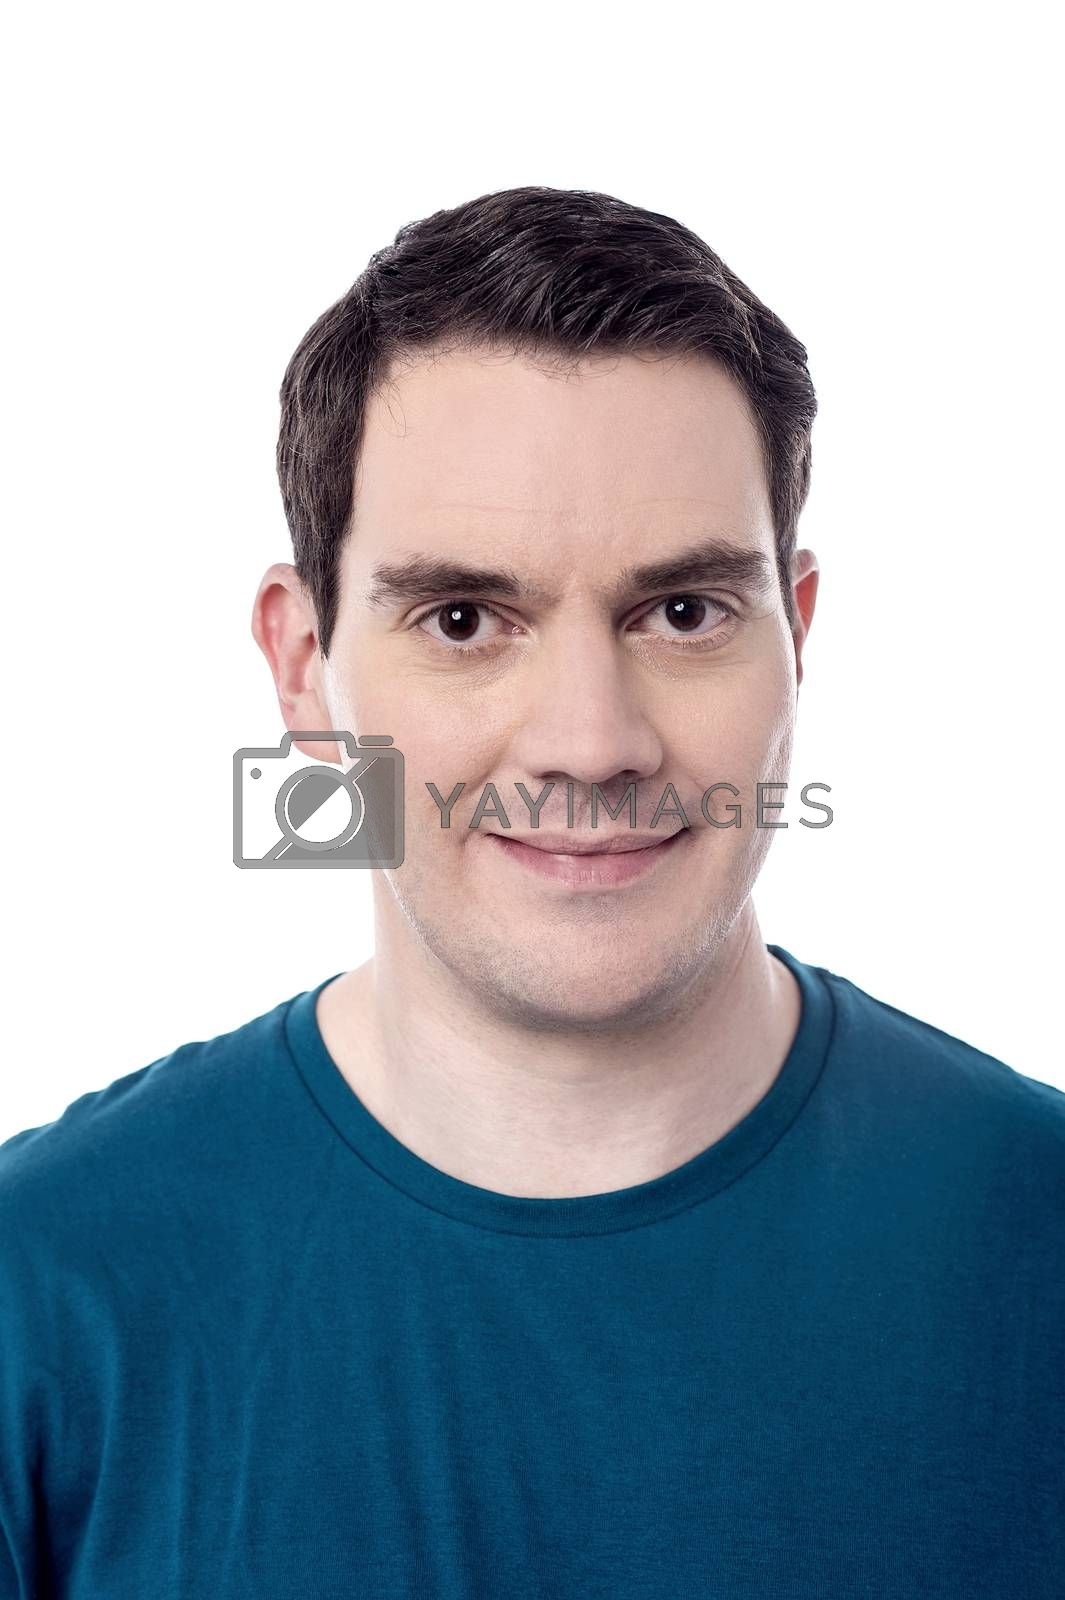 Image of a casual man posing over white background